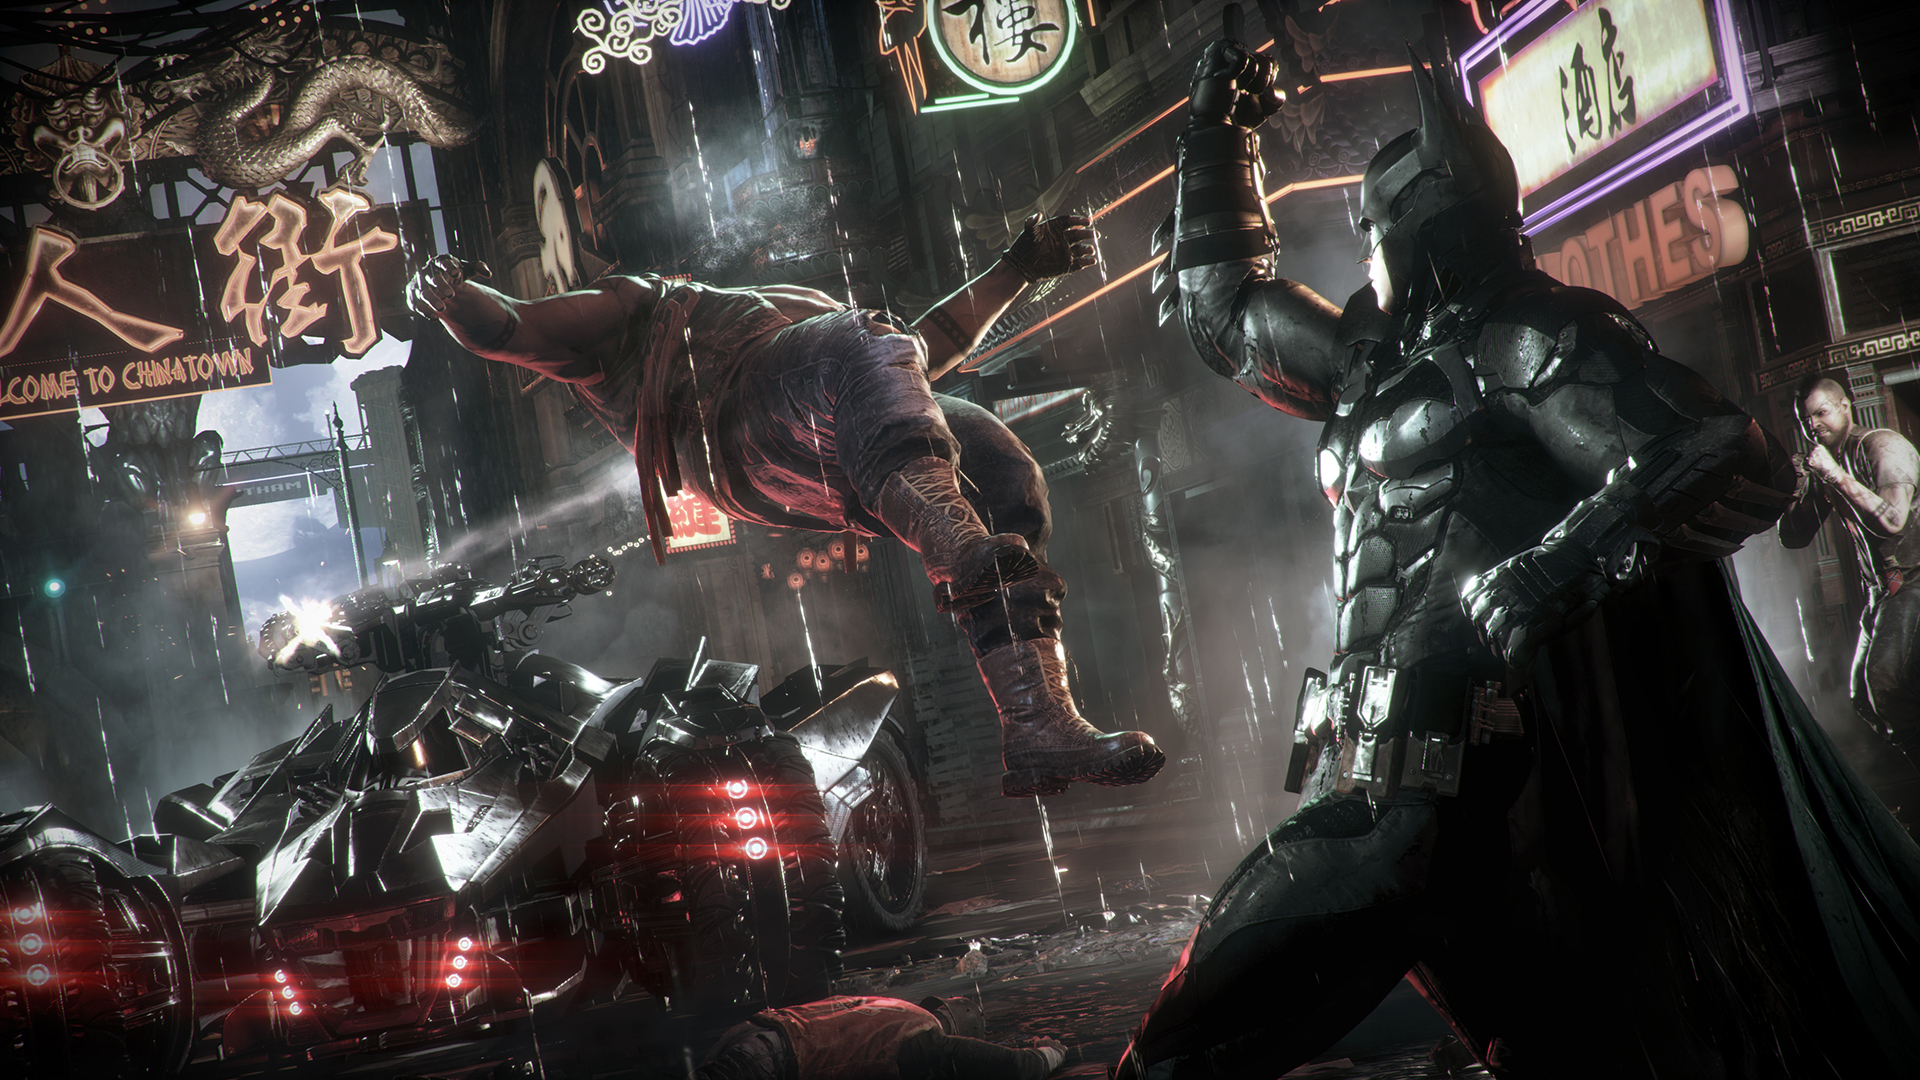 The Batmobile Looks Badass In These Batman Arkham Knight Screenshots